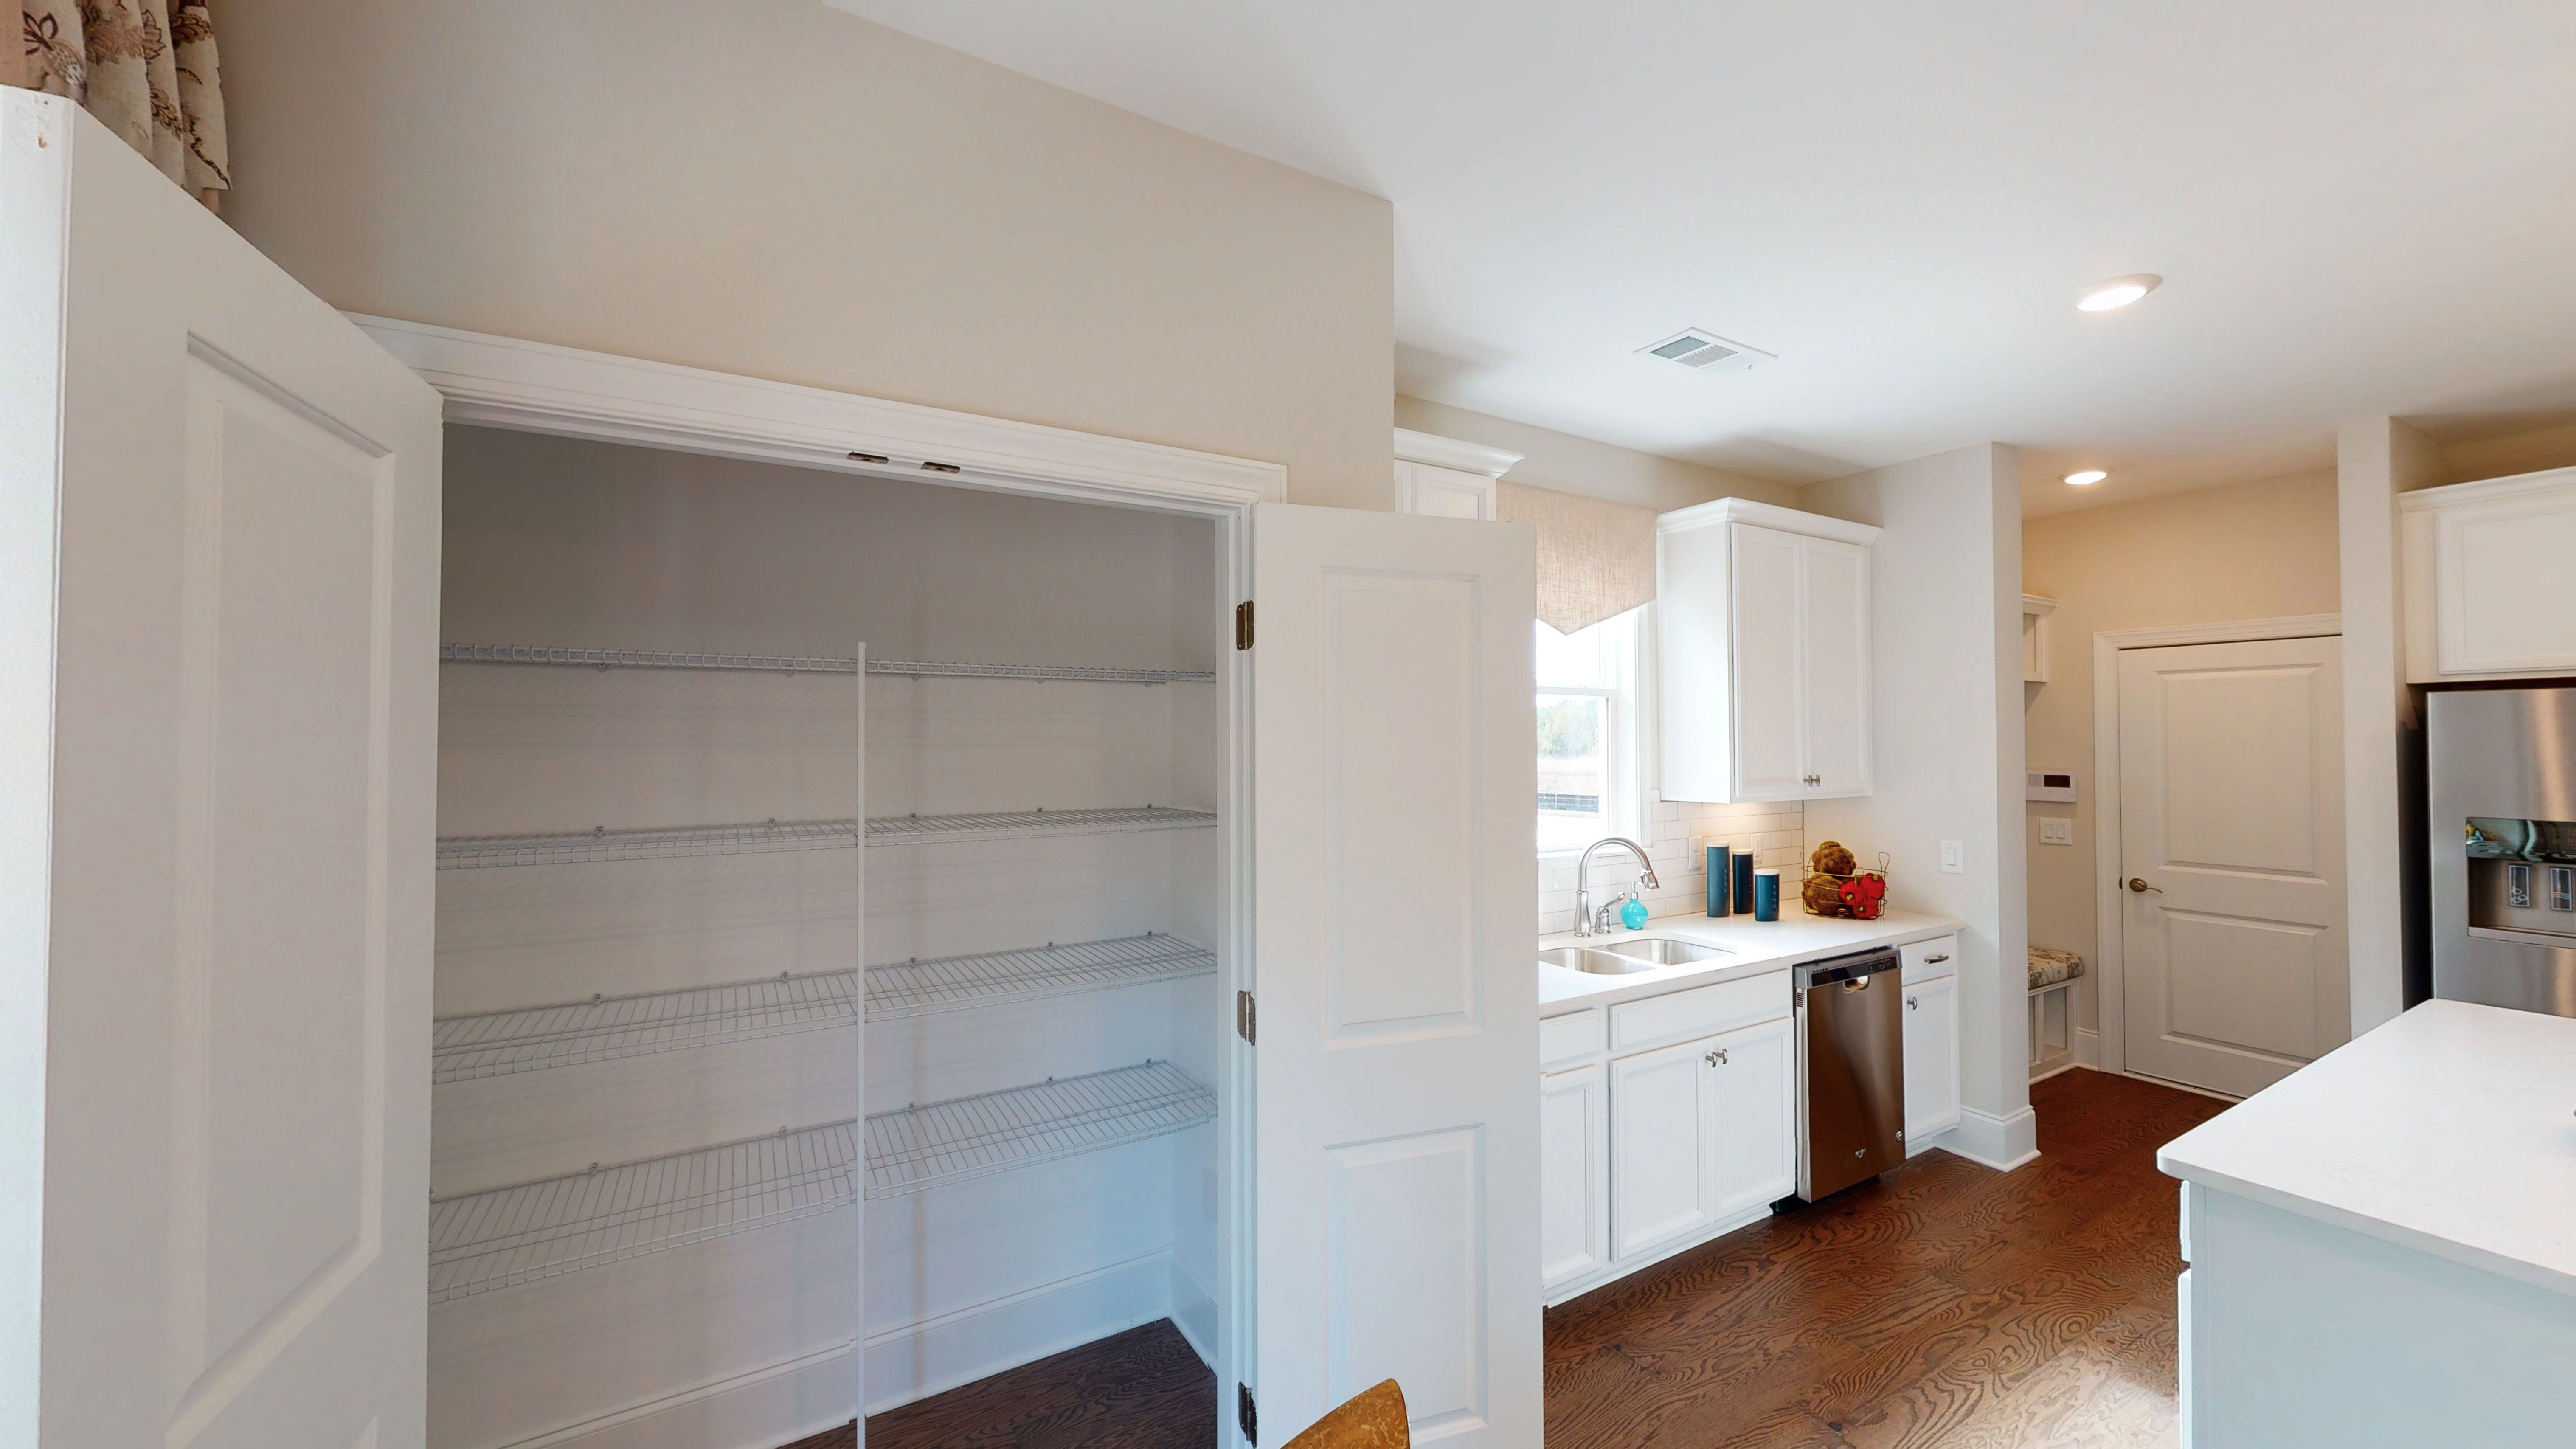 Kitchen featured in The Westport By O'Dwyer Homes in Atlanta, GA